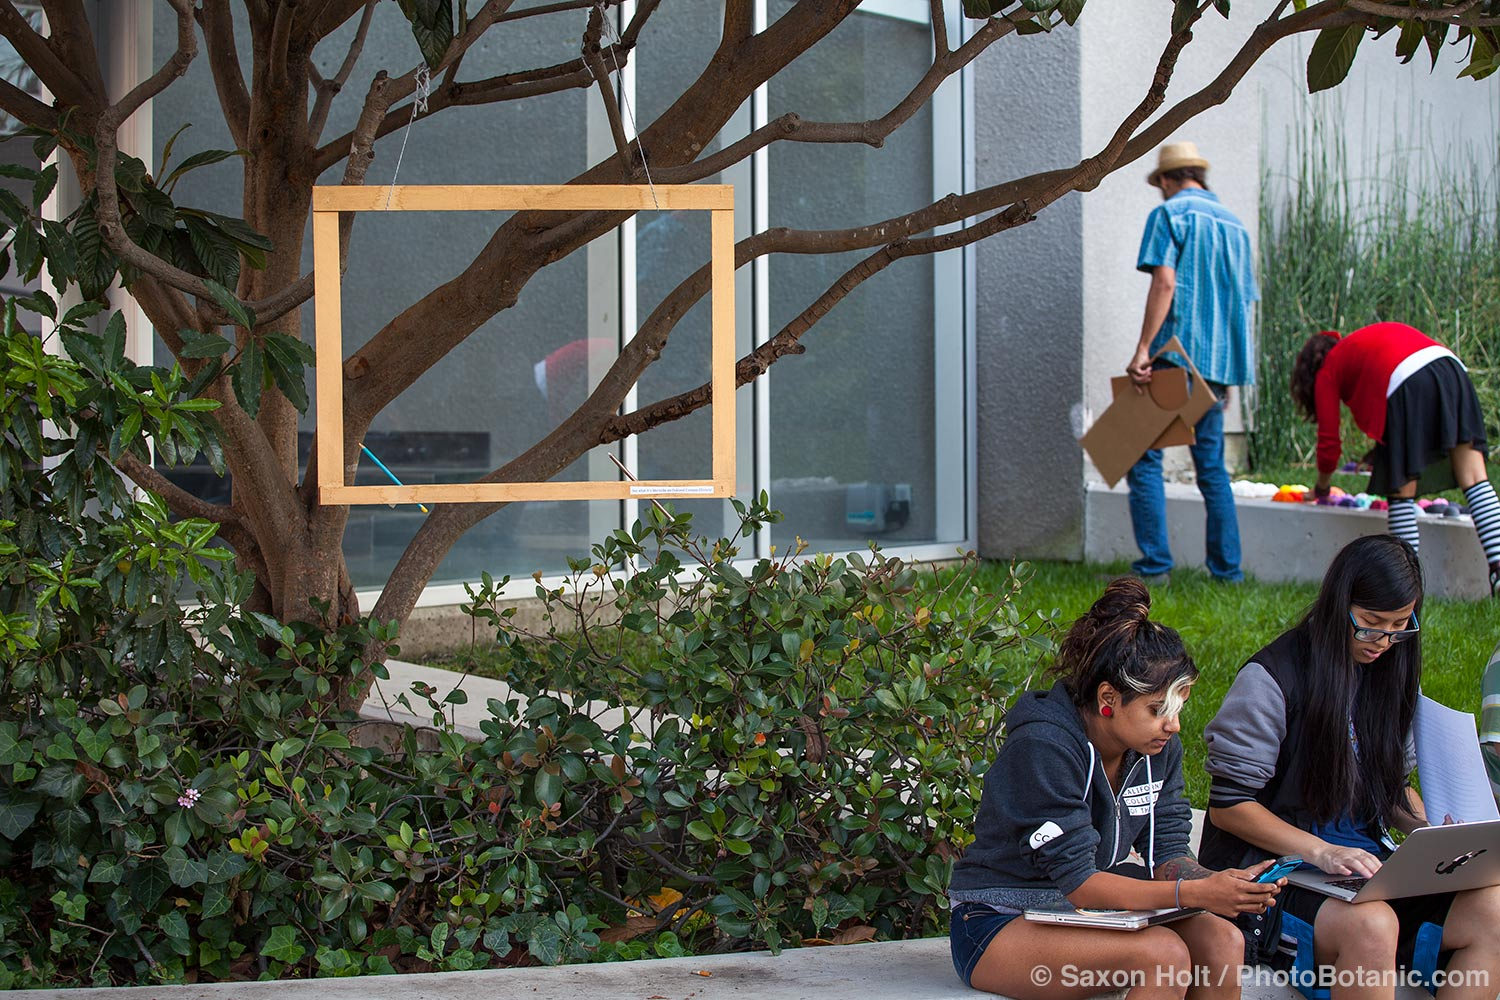 Empty frame hanging in tree at California College of Arts